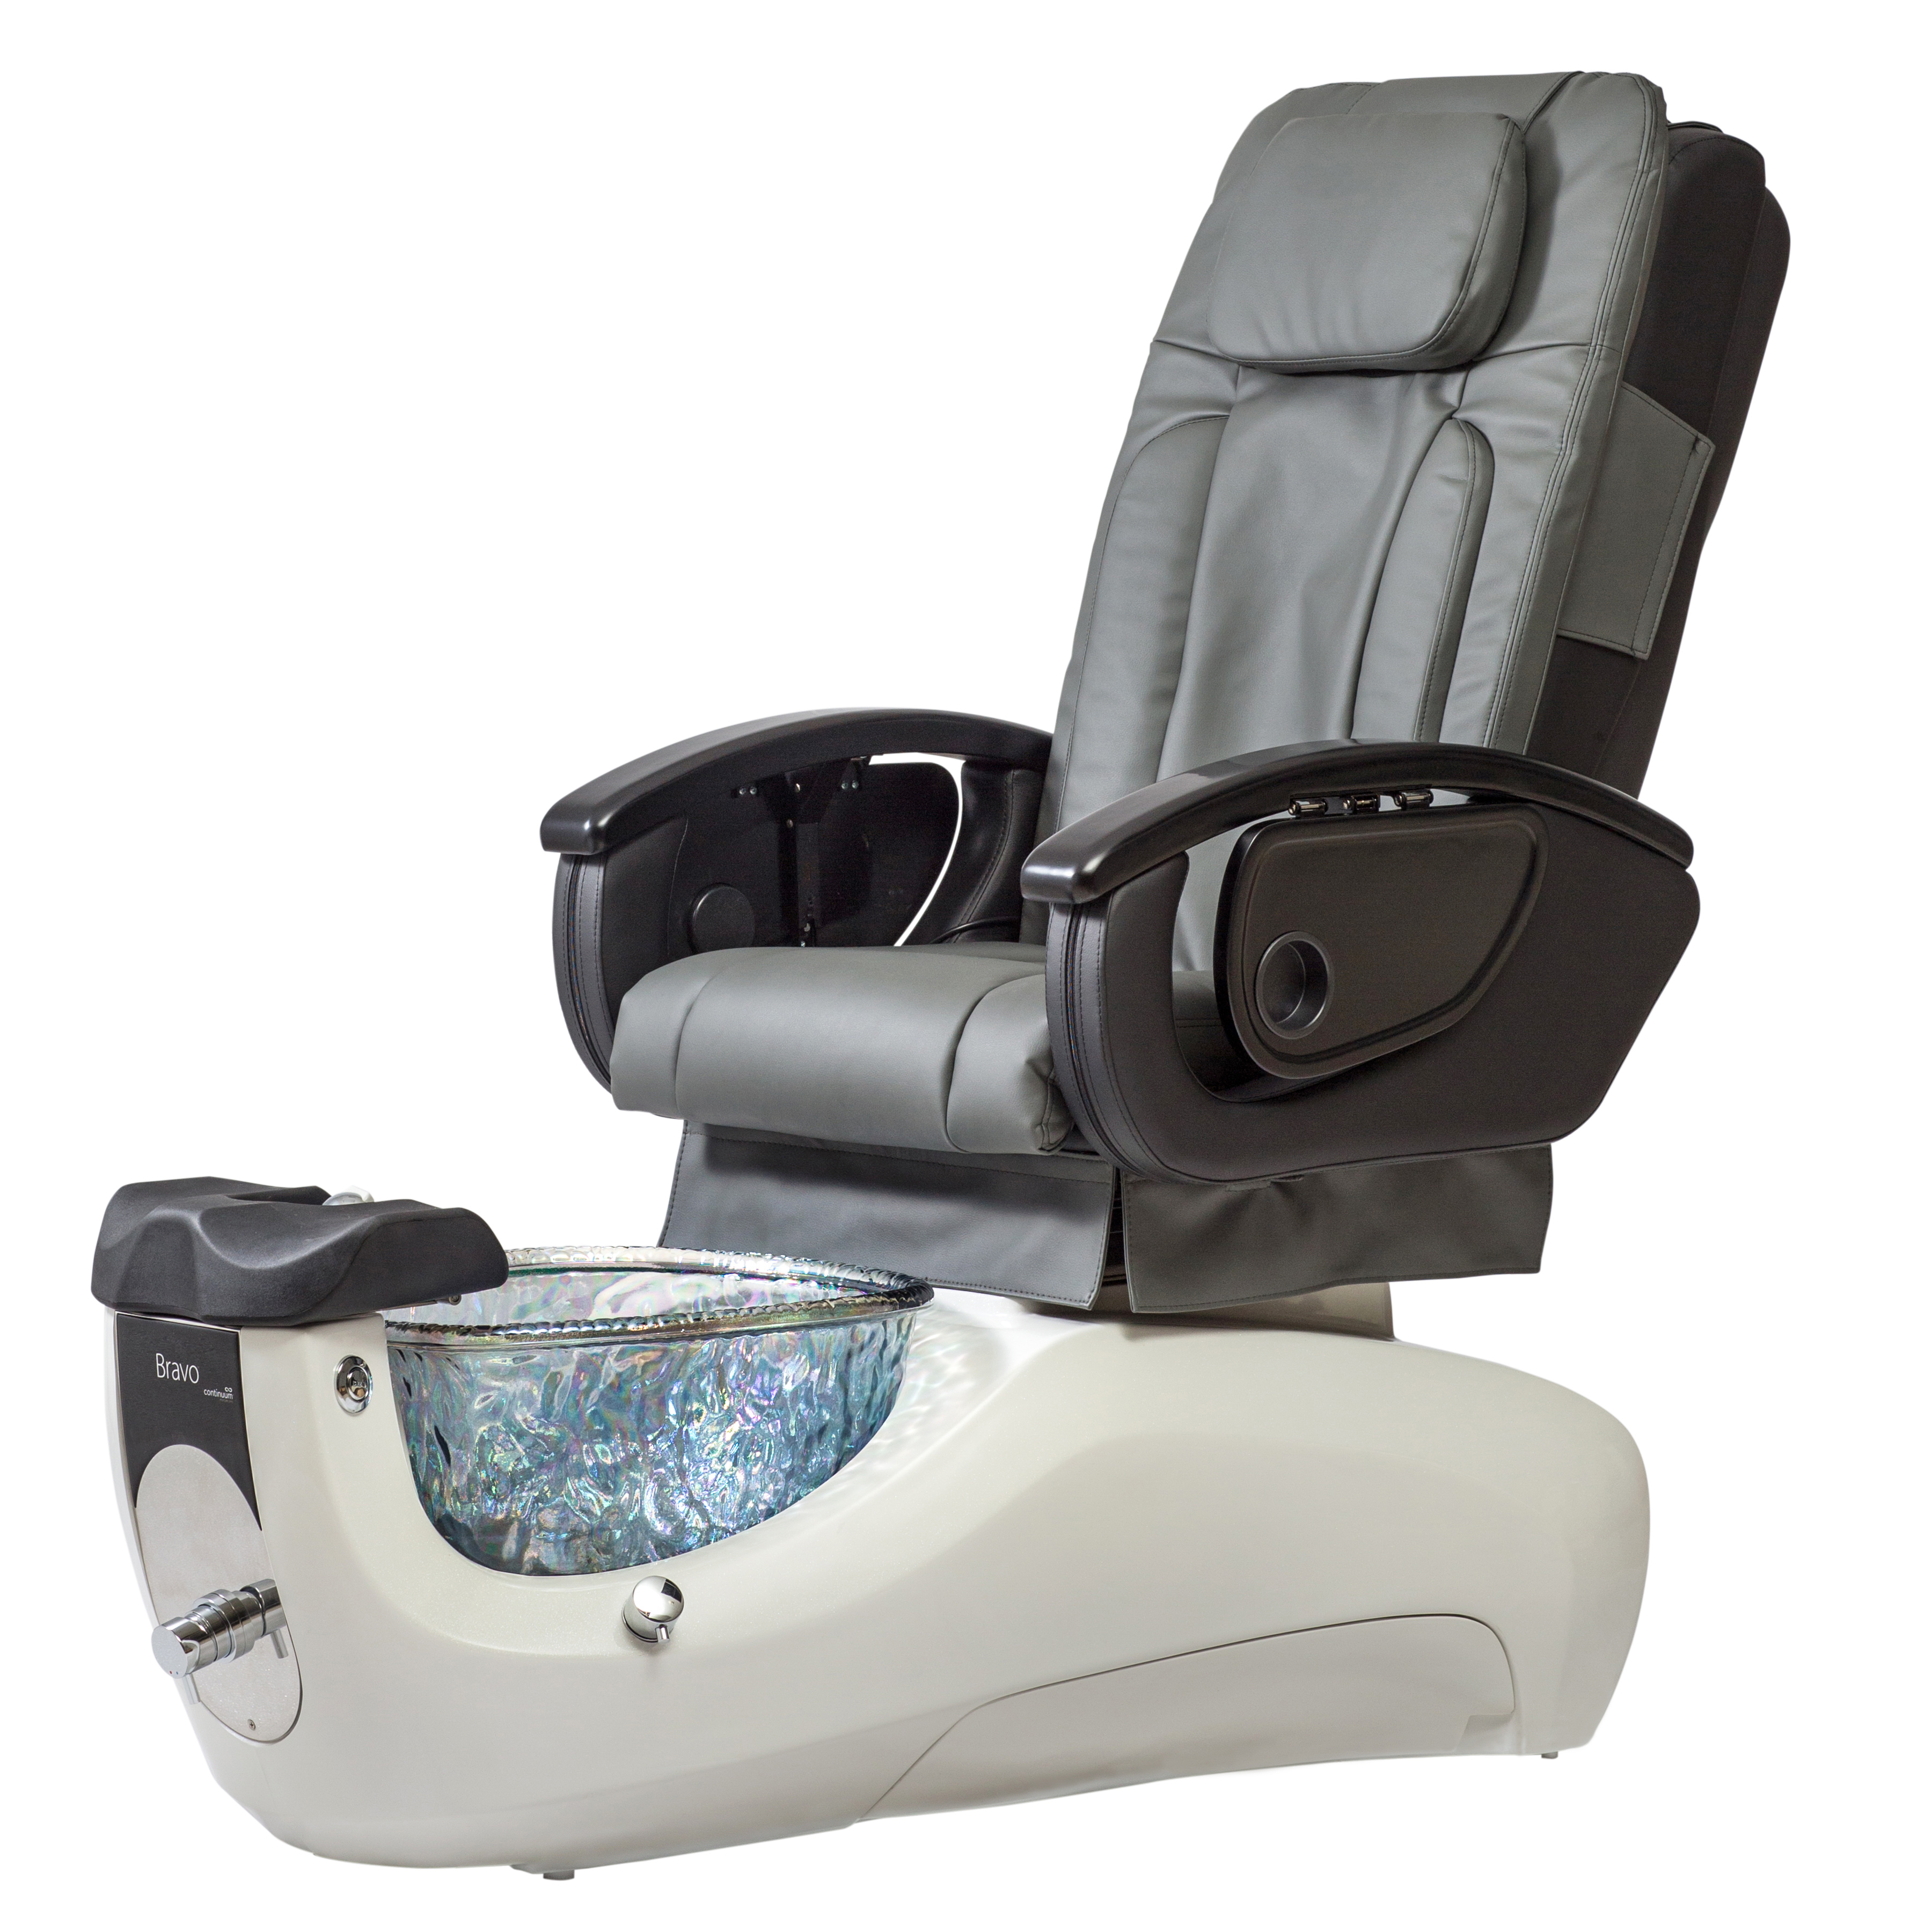 spa pedicure chair clearance patio chairs bravo ve station spas f142 continuum